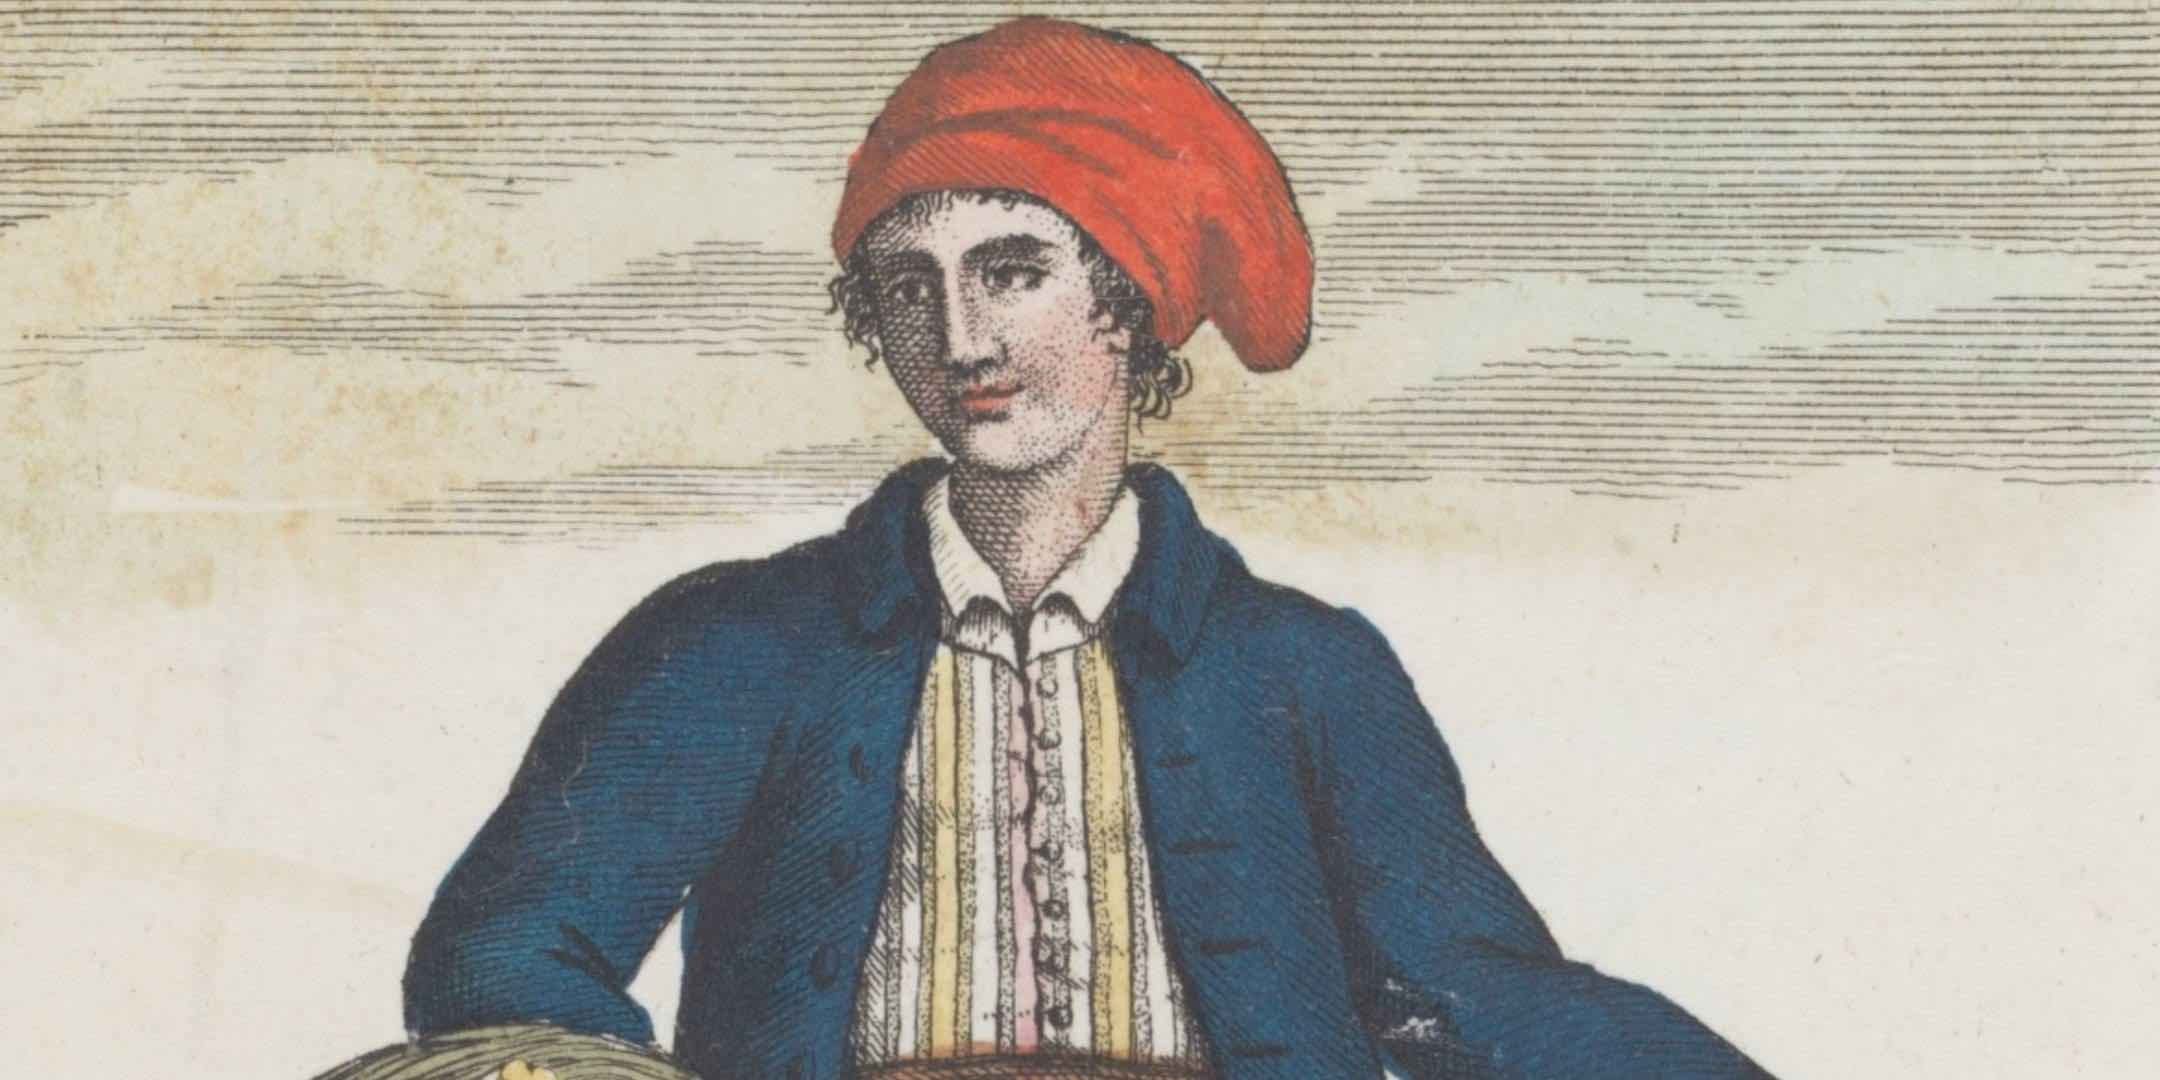 The first known image of Jeanne Baret, from 1816. From Navigazioni di Cook del grande oceano e intorno al globo, Volume 2, 1816, Sonzogono e Comp, Milano. Reproduced courtesy State Library of NSW